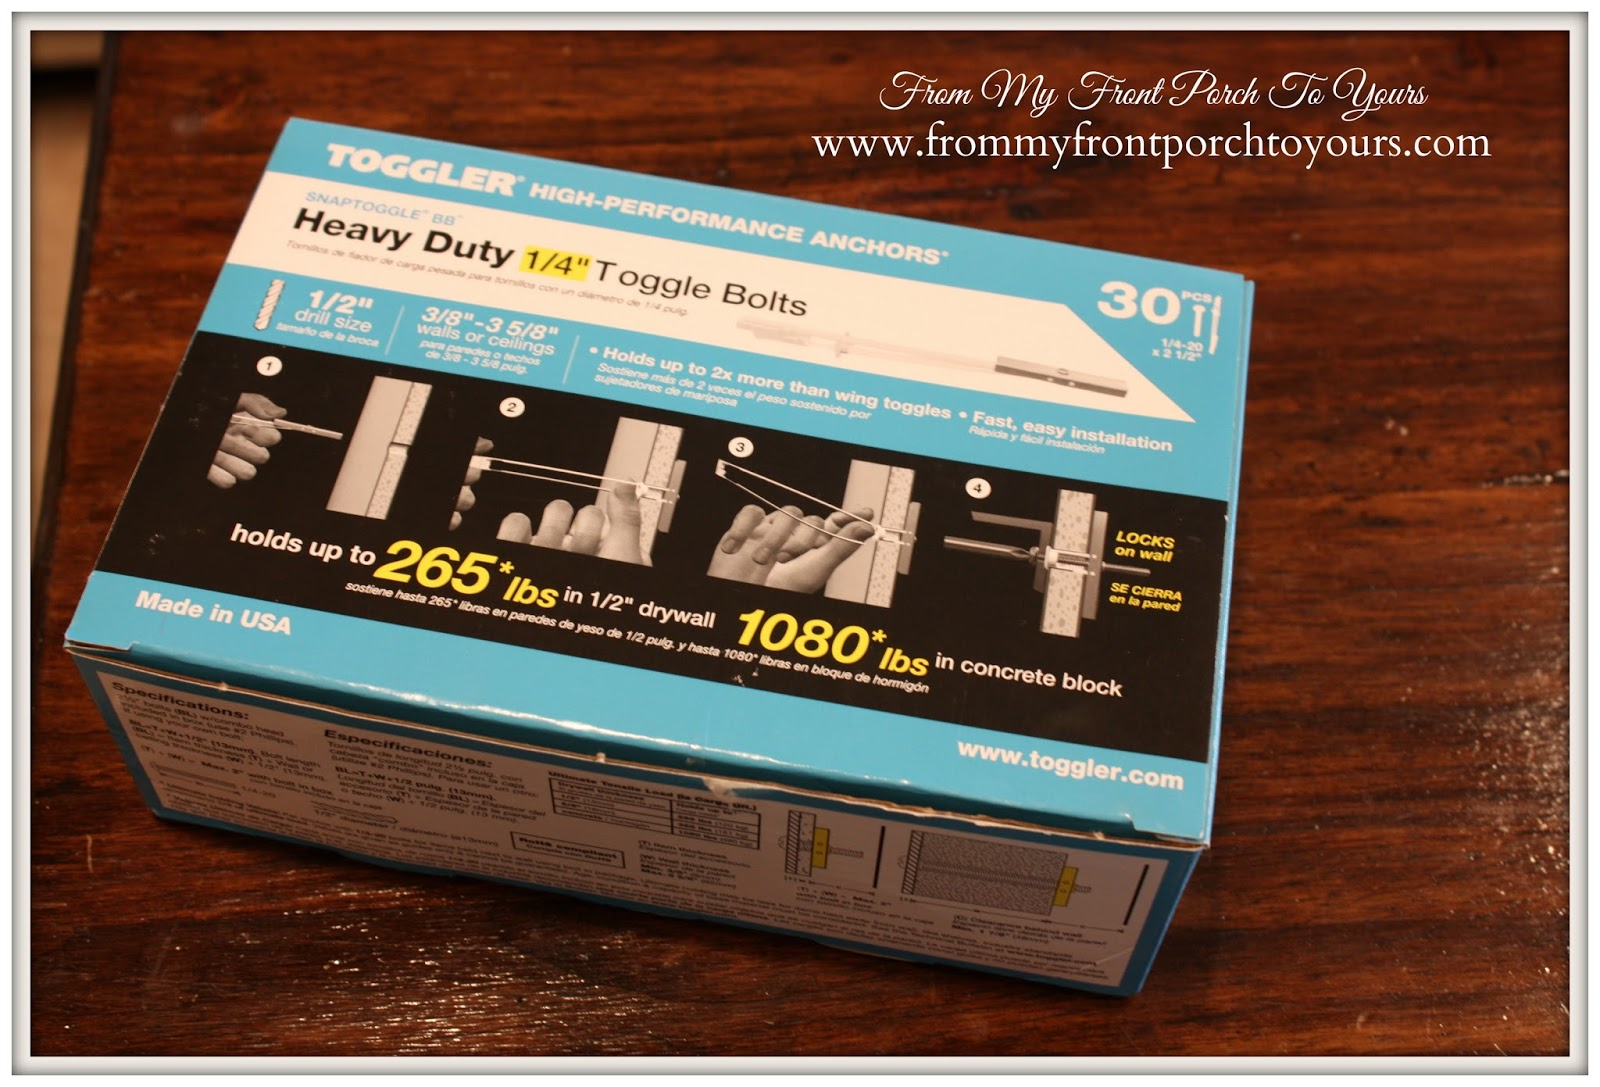 Heavy duty toggle bolts needed to install wood beams securely on ceiling at From My Front Porch To Yours.